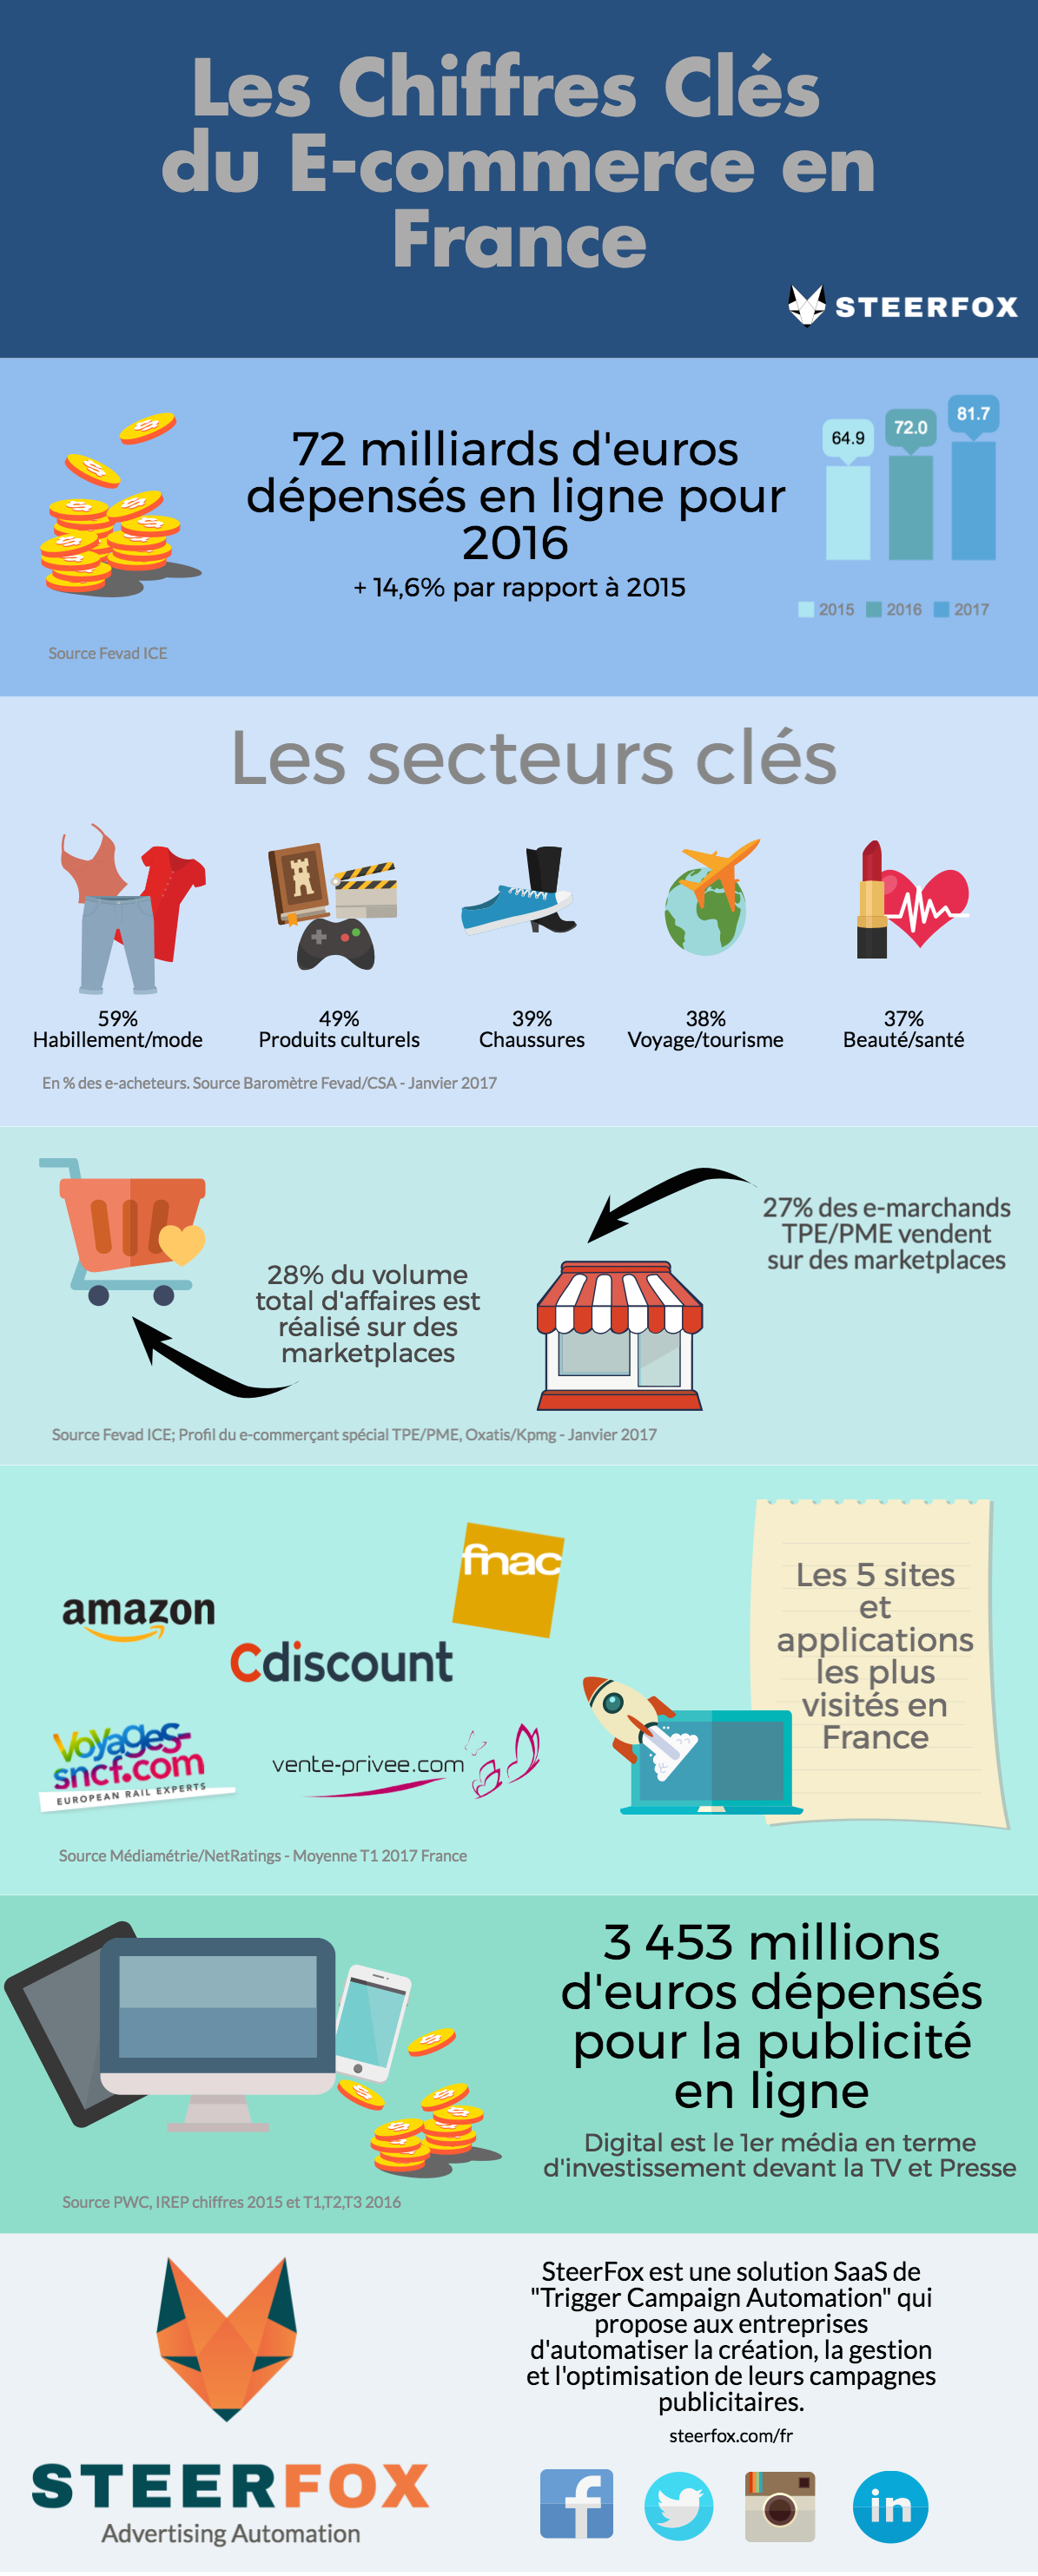 ecommerce; infographie, fevad, chiffres e-commerce france